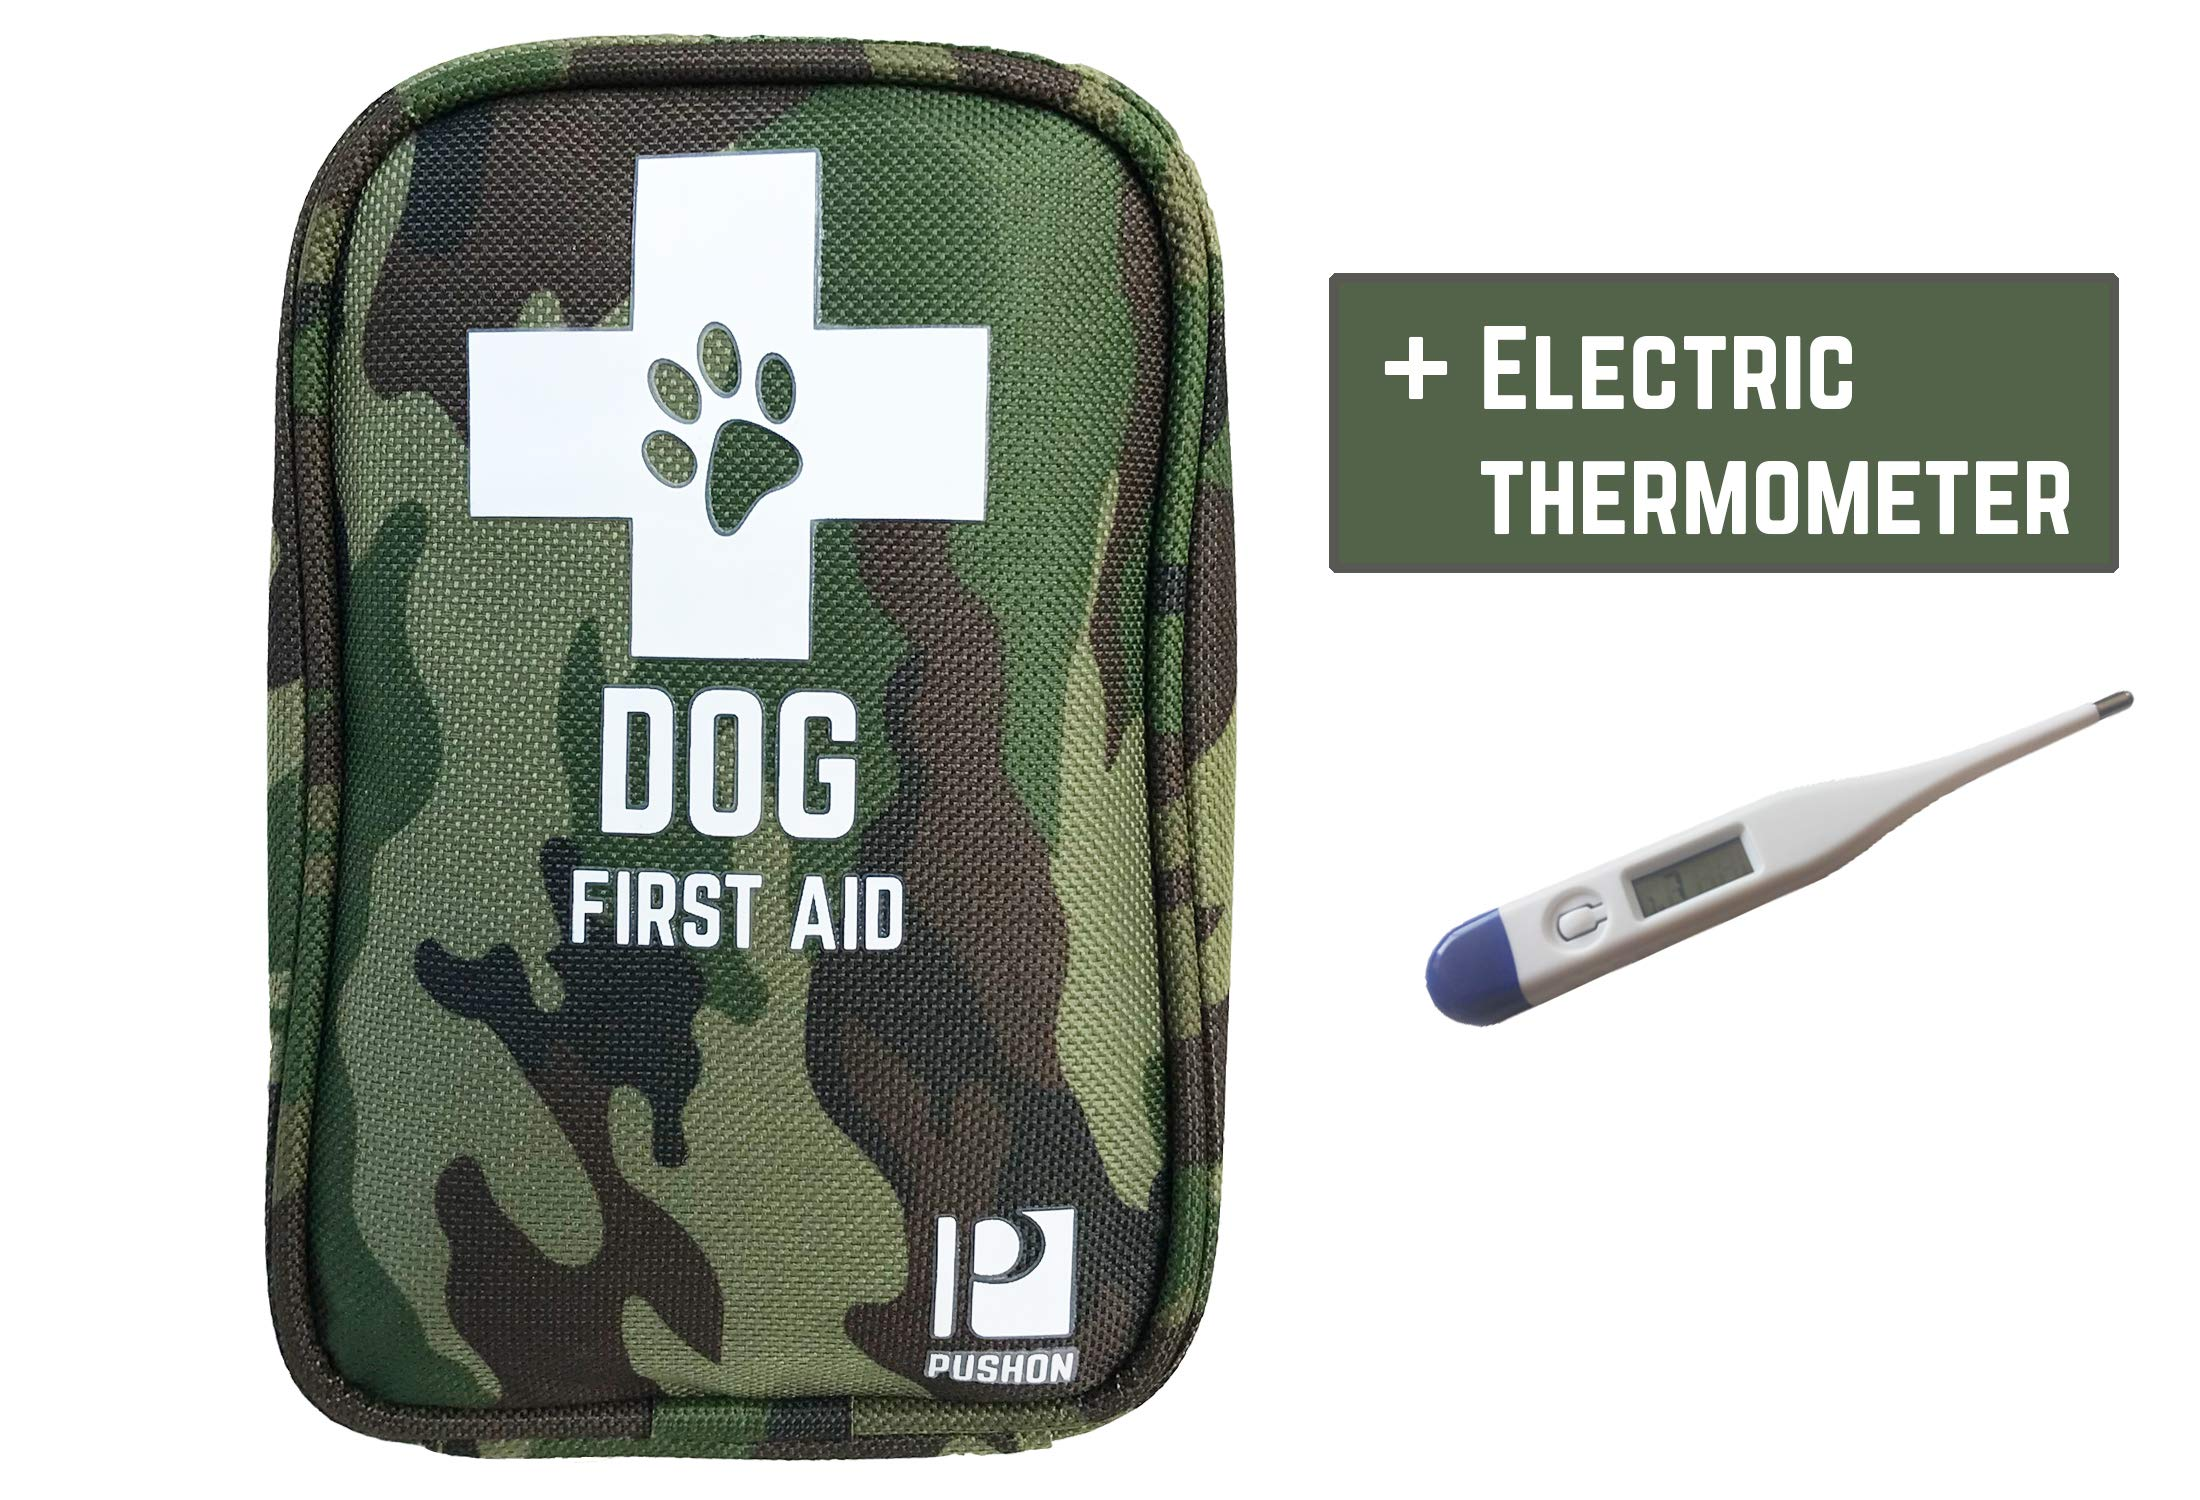 PushOn Premium Dog First Aid Kit - Pet Safety Supplies for Camping, Walks, Cycling, car and hikes - with Thermometer, and Emergency Blanket. Deluxe for Small and Large Dog